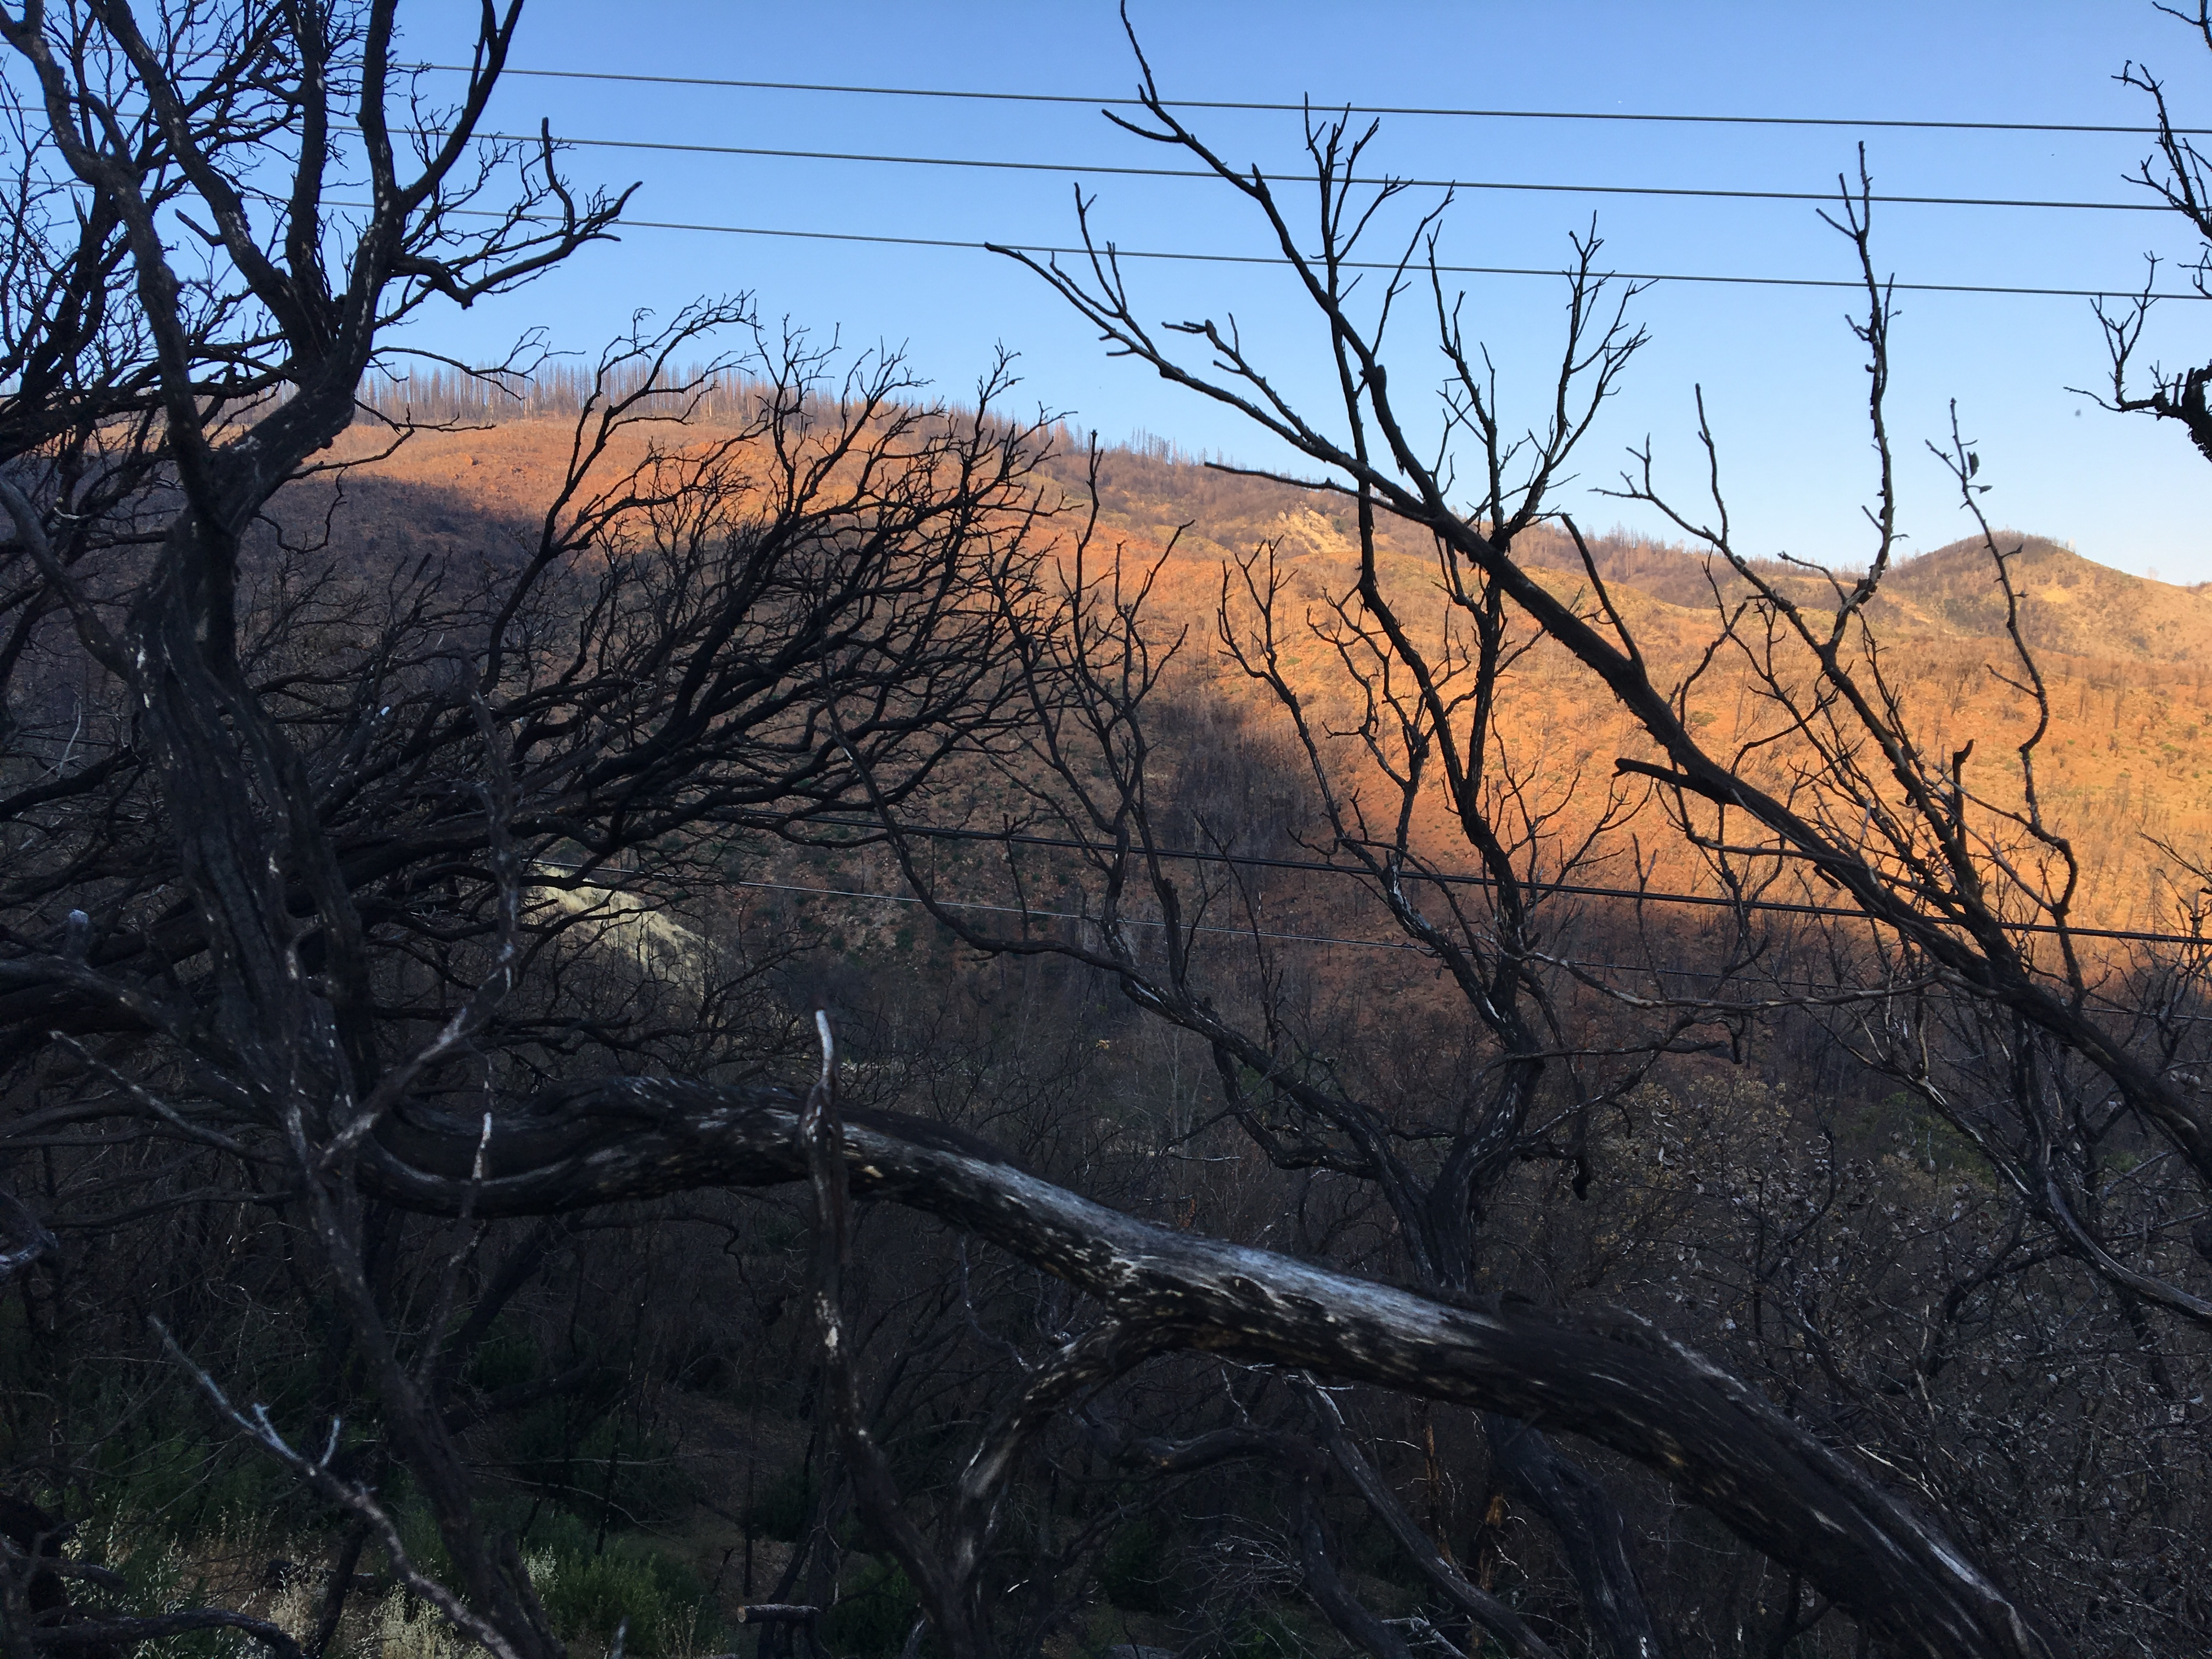 Burn scars still mar the side of Cobb Mountain a year after the Valley Fire burned 76,000 acres and destroyed more than 1,200 homes.